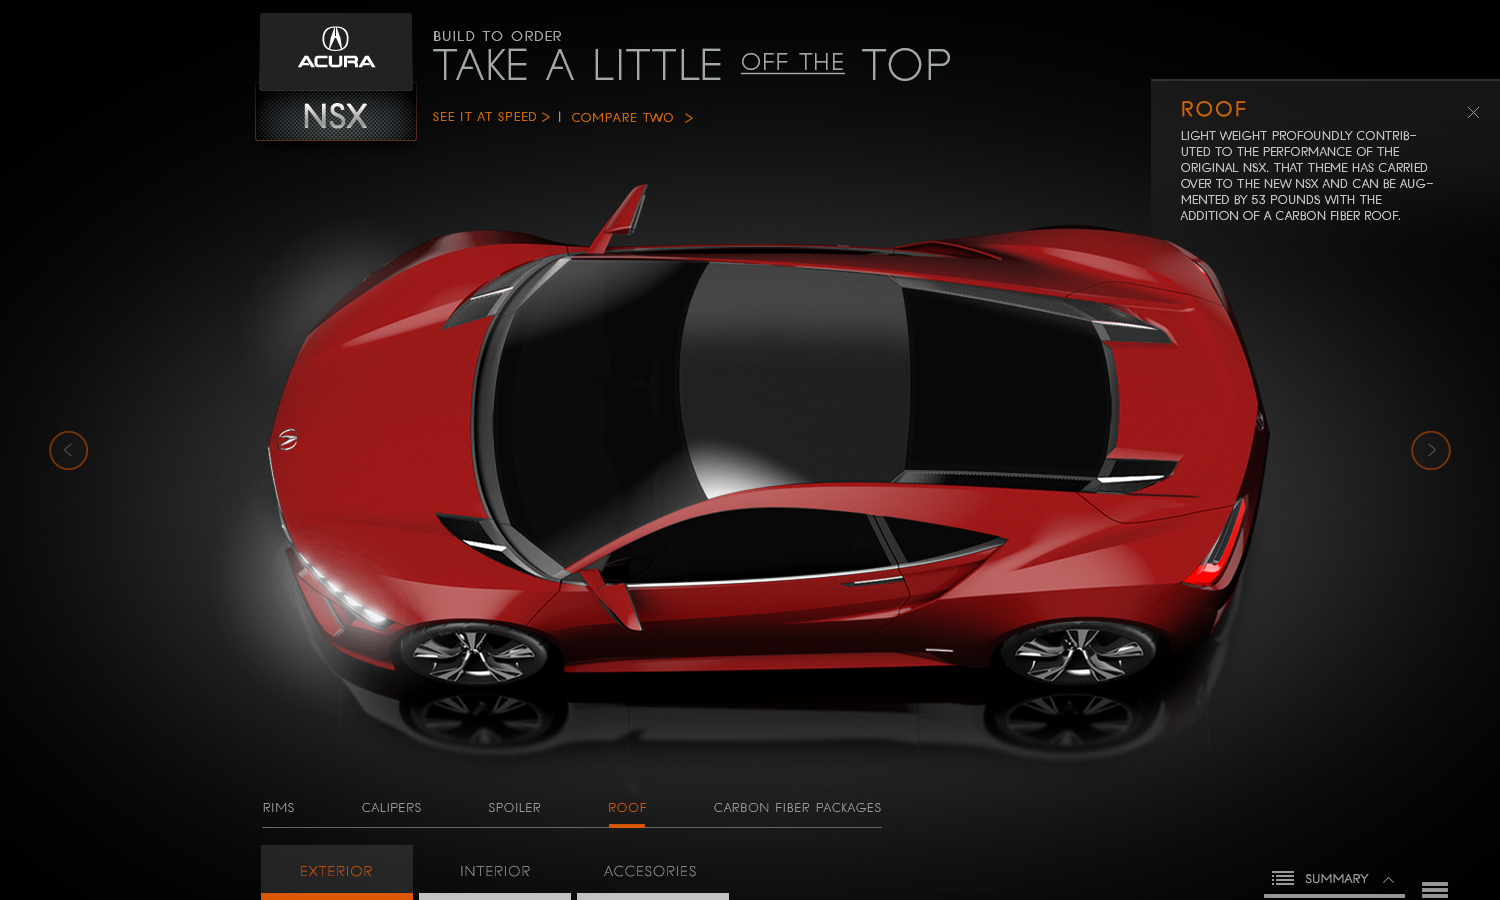 Acura_NSX_BTO_Concept_28.png